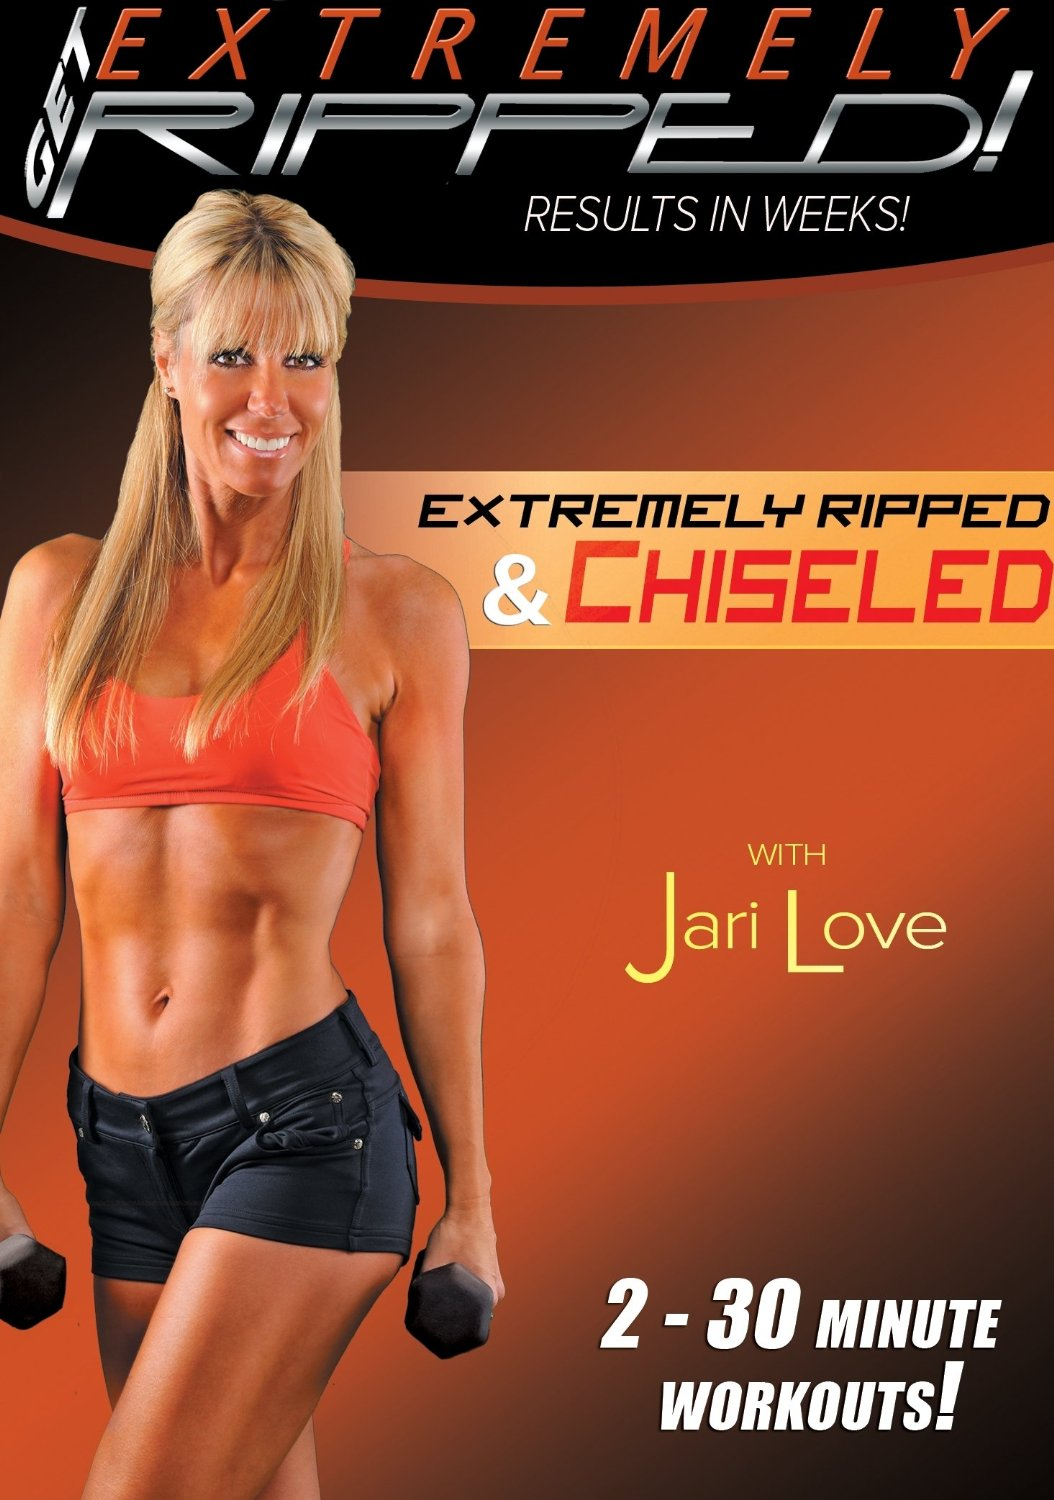 Jari Love Todd Washburn Get Ripped Cardio Workout The Chase Listen Online And